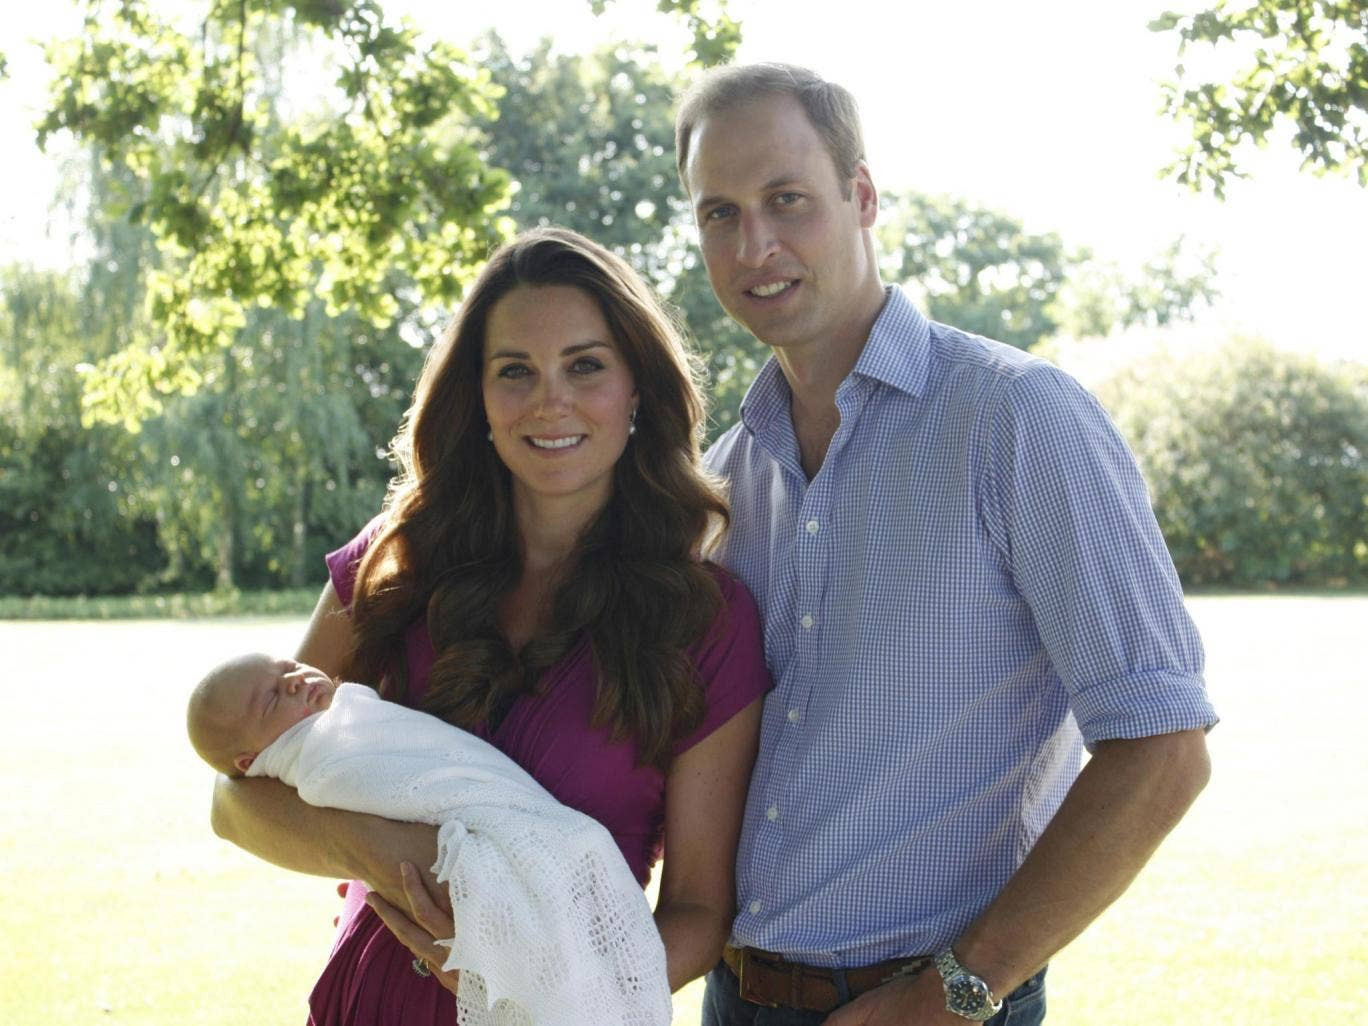 The Duke and Duchess of Cambridge 2013 with Prince George